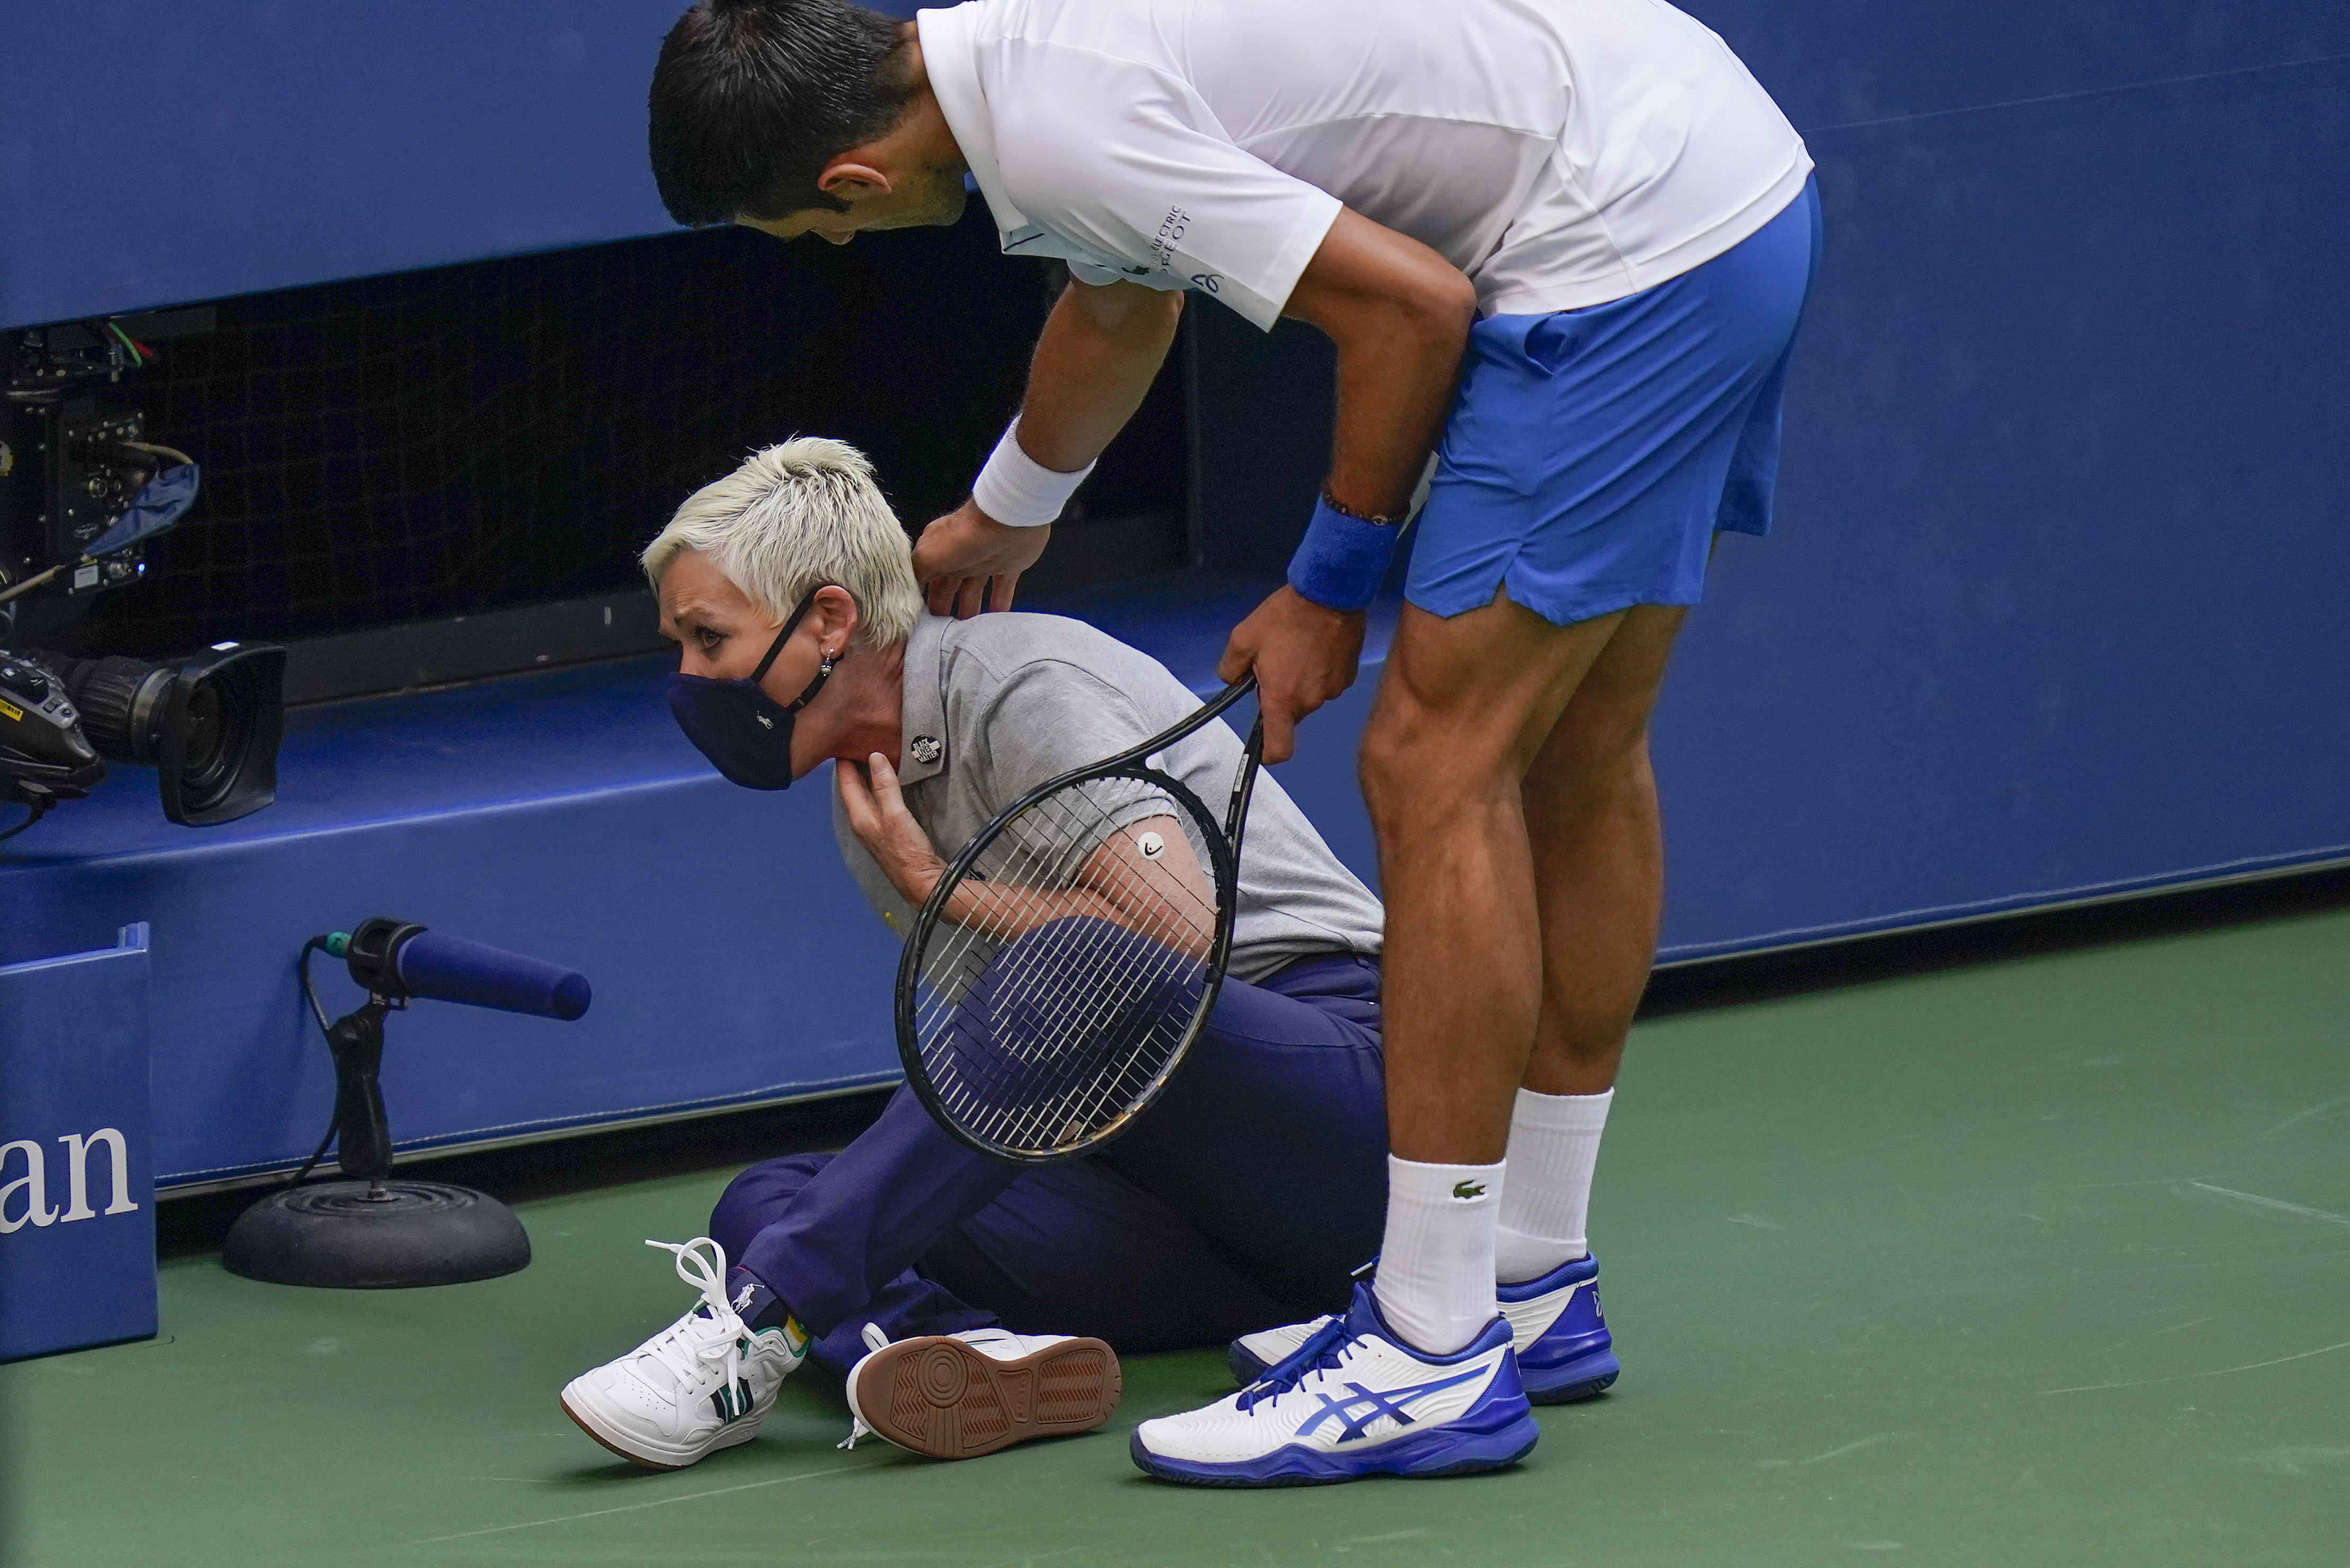 He S Going To Be The Bad Guy The Rest Of His Career Says John Mcenroe Of Novak Djokovic Ctv News